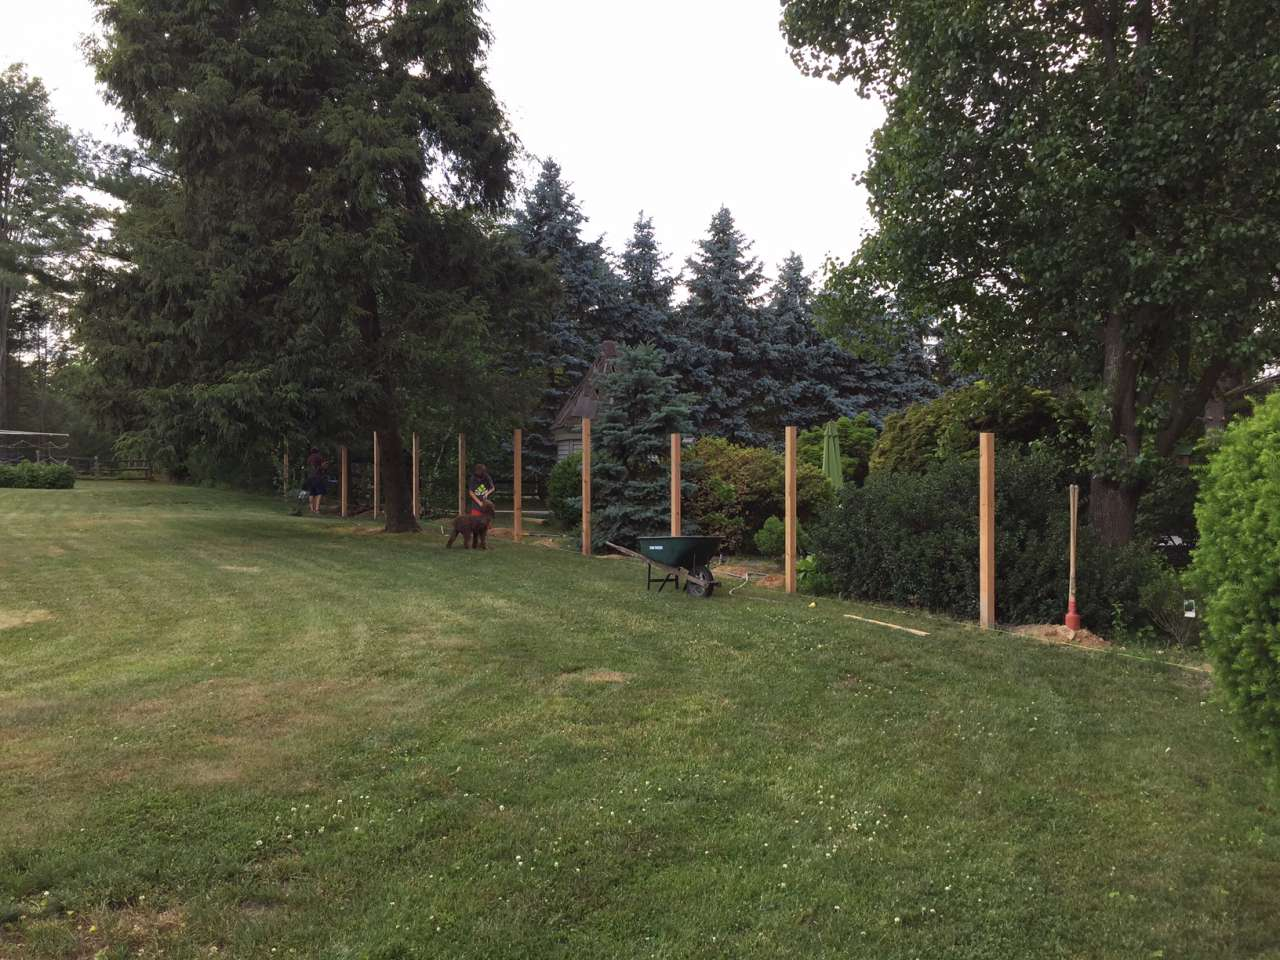 How to make a fence cedar post and rail lehman lane